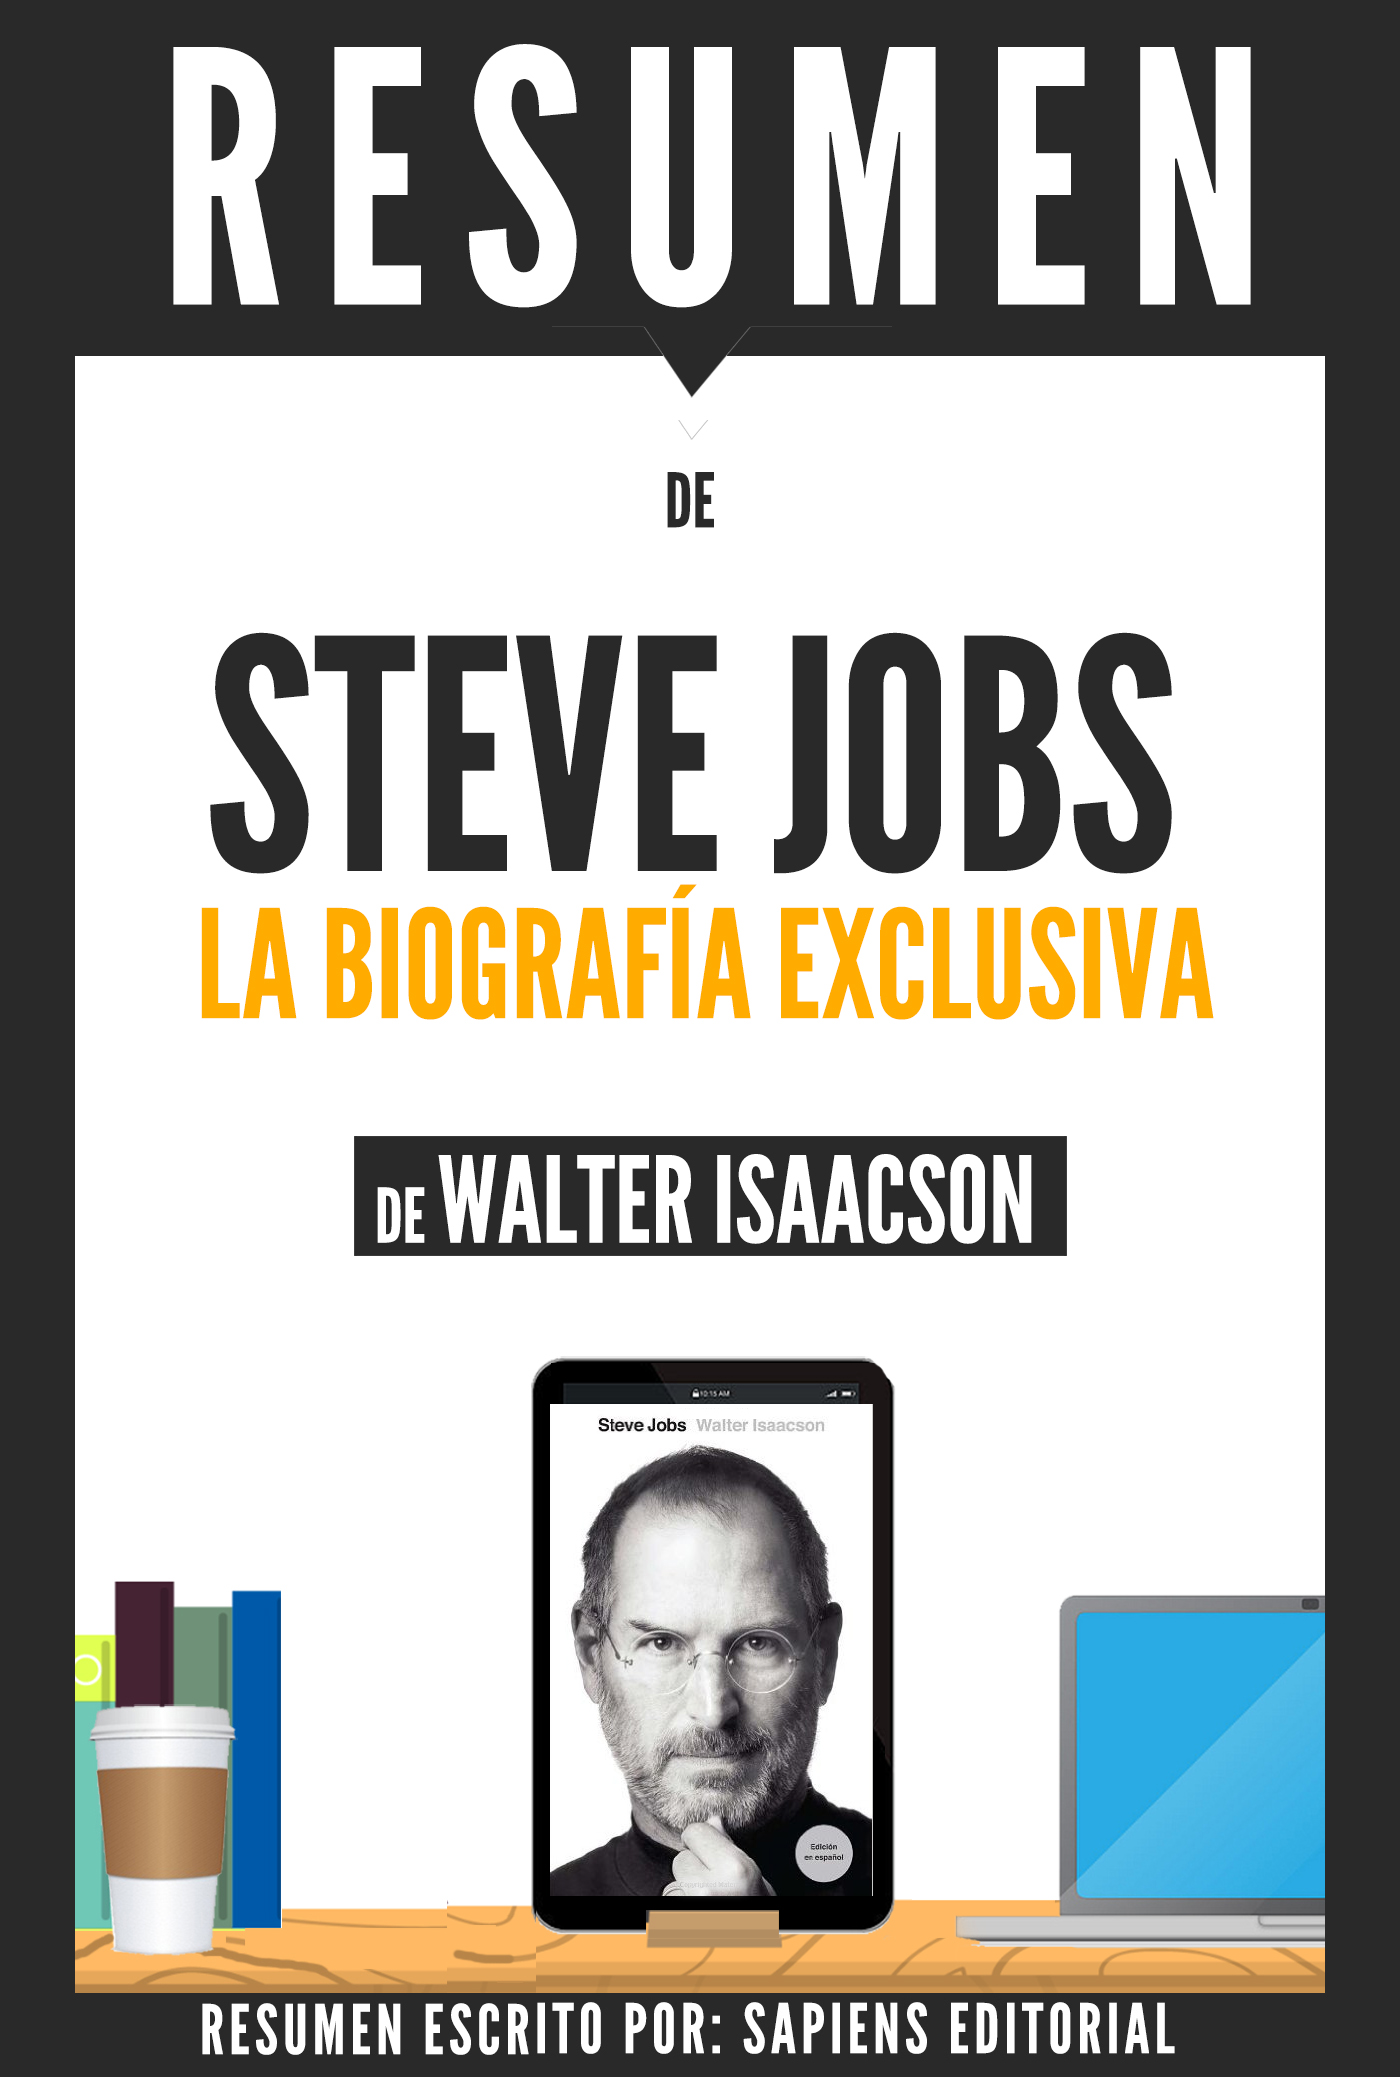 Steve Jobs Libro Smashwords Steve Jobs La Biografia Exclusiva Resumen